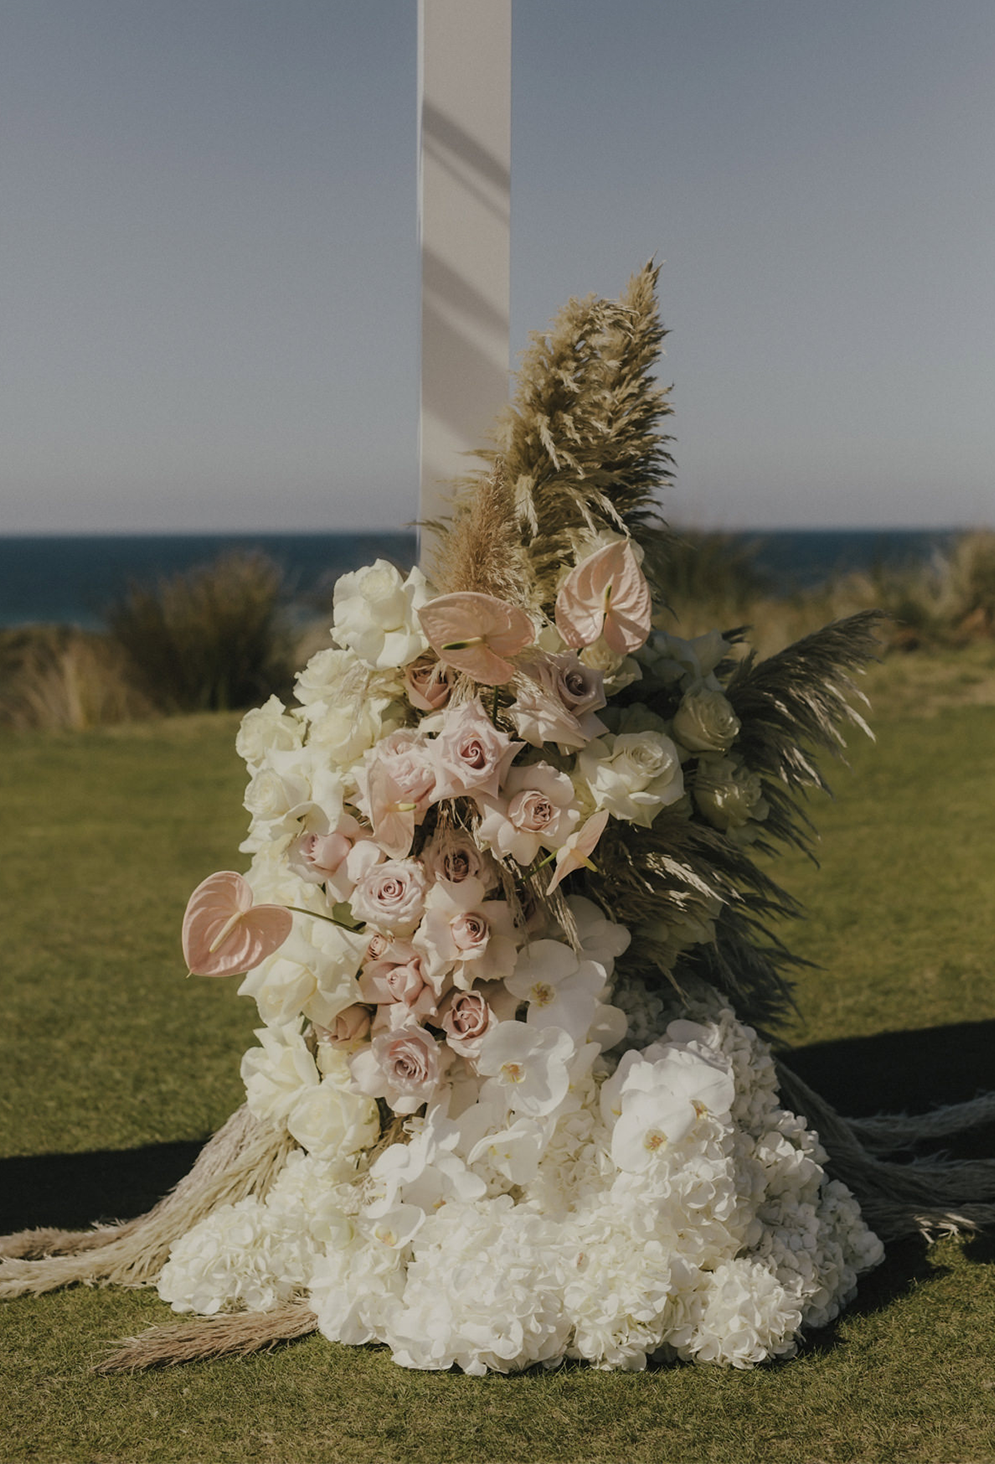 a pastel dreamscape. - unapologetically girly, feminine florals to make hearts sing.